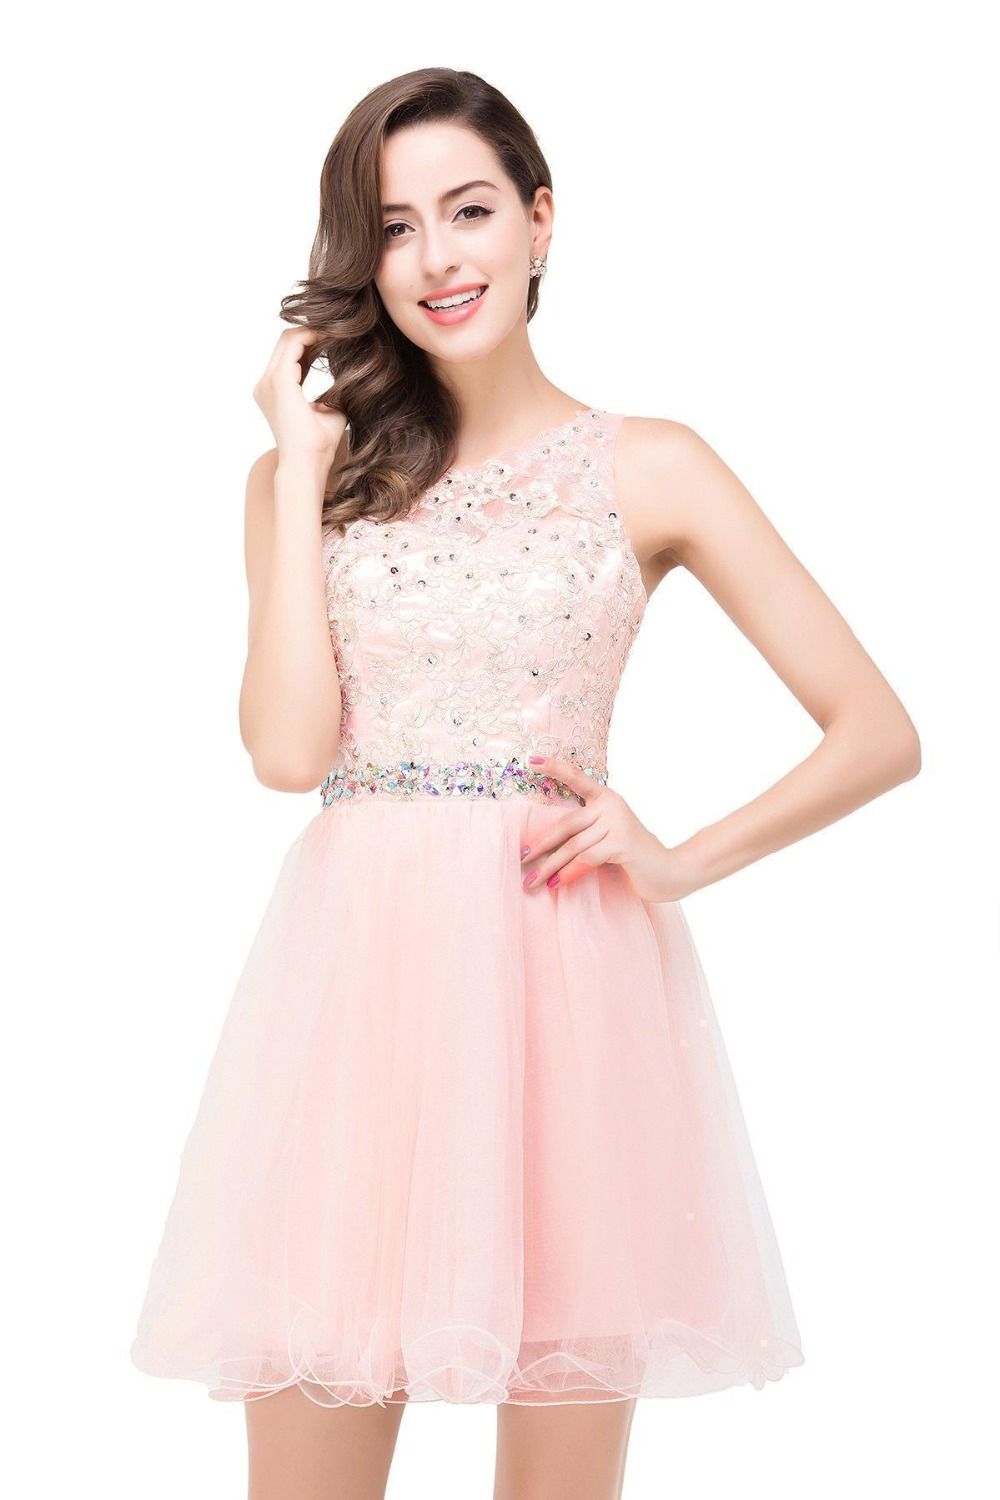 Babyonline Pink Beaded Homecoming Dresses 2017 Scoop Neck Soft Tulle Party  Dresses Mini Dress Black Lace Graduation Dresses b451cab33bbc